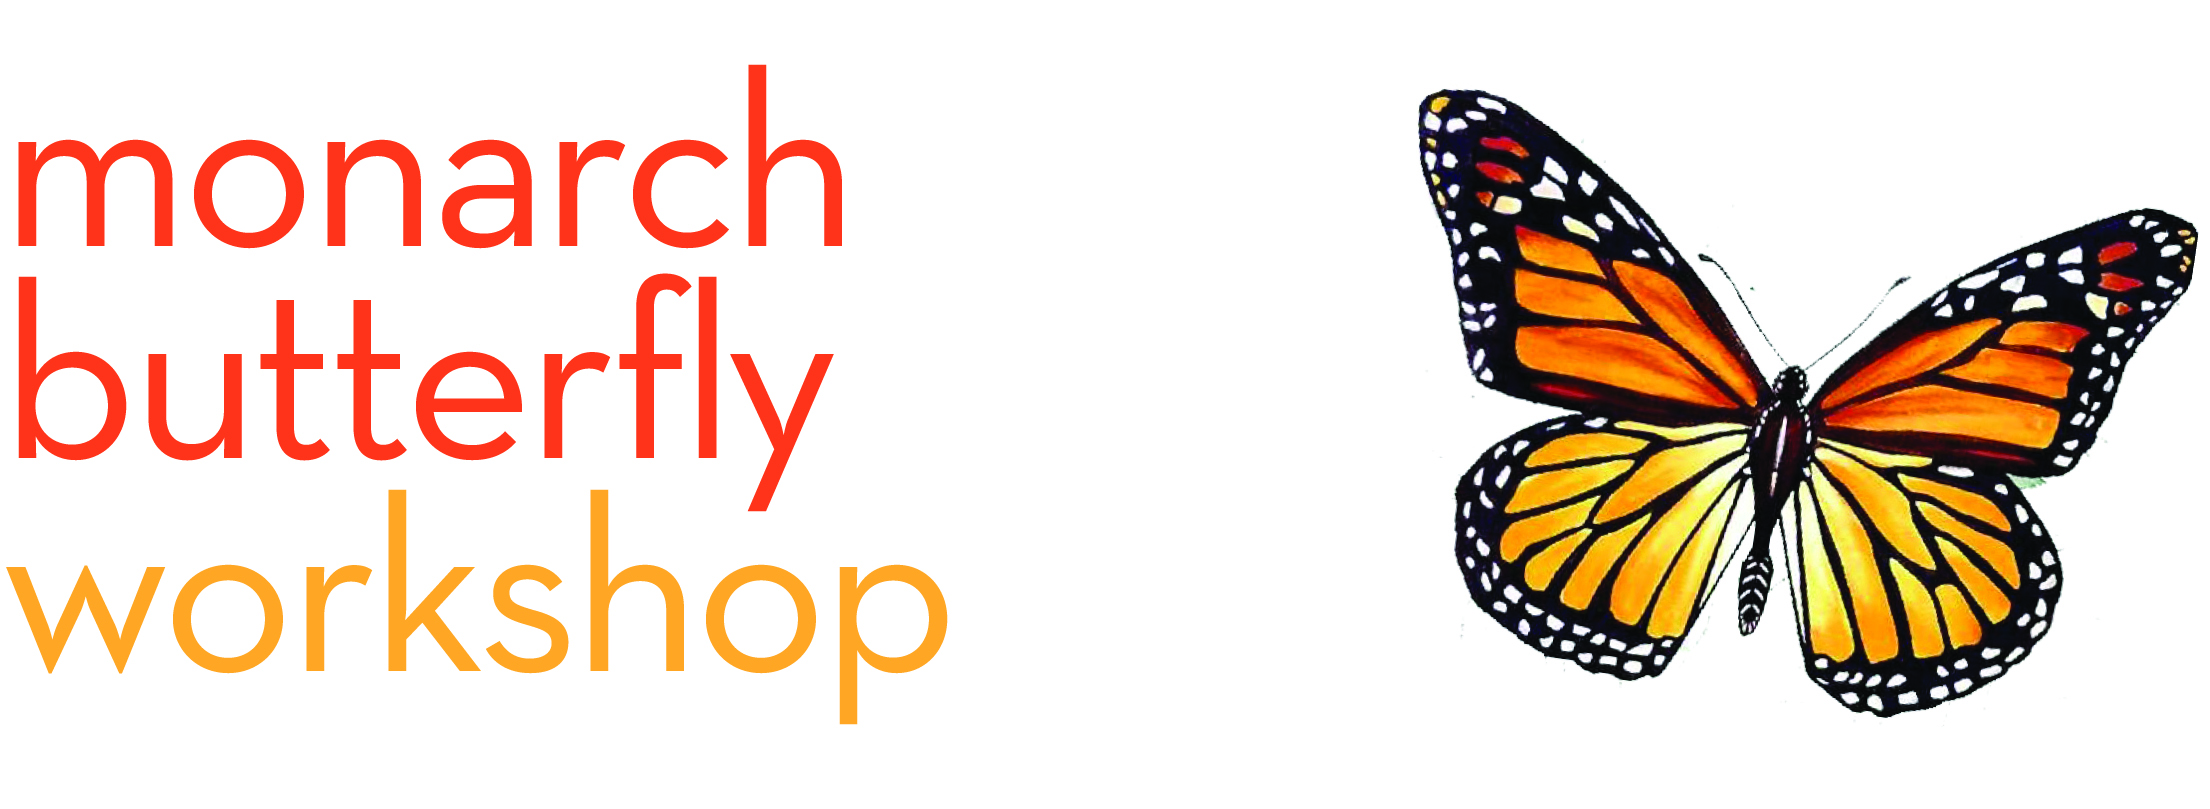 Tickets for 2019 Monarch Butterfly Workshop in Monkton from ShowClix